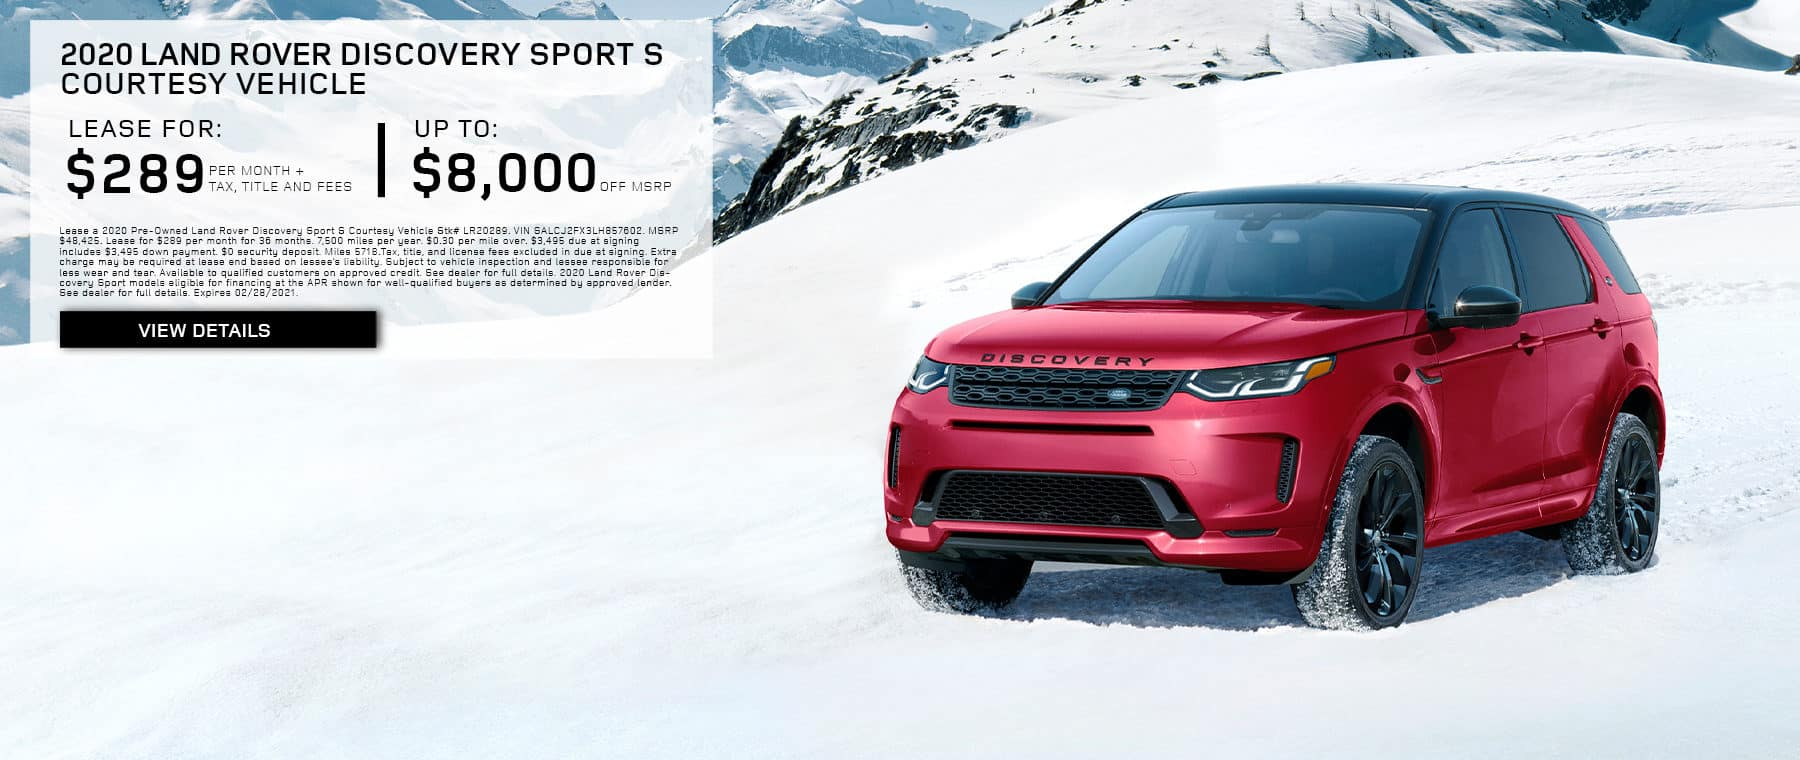 LAND ROVER COURTESY DUAL OFFER FEBRUARY LEASE BANNER 2